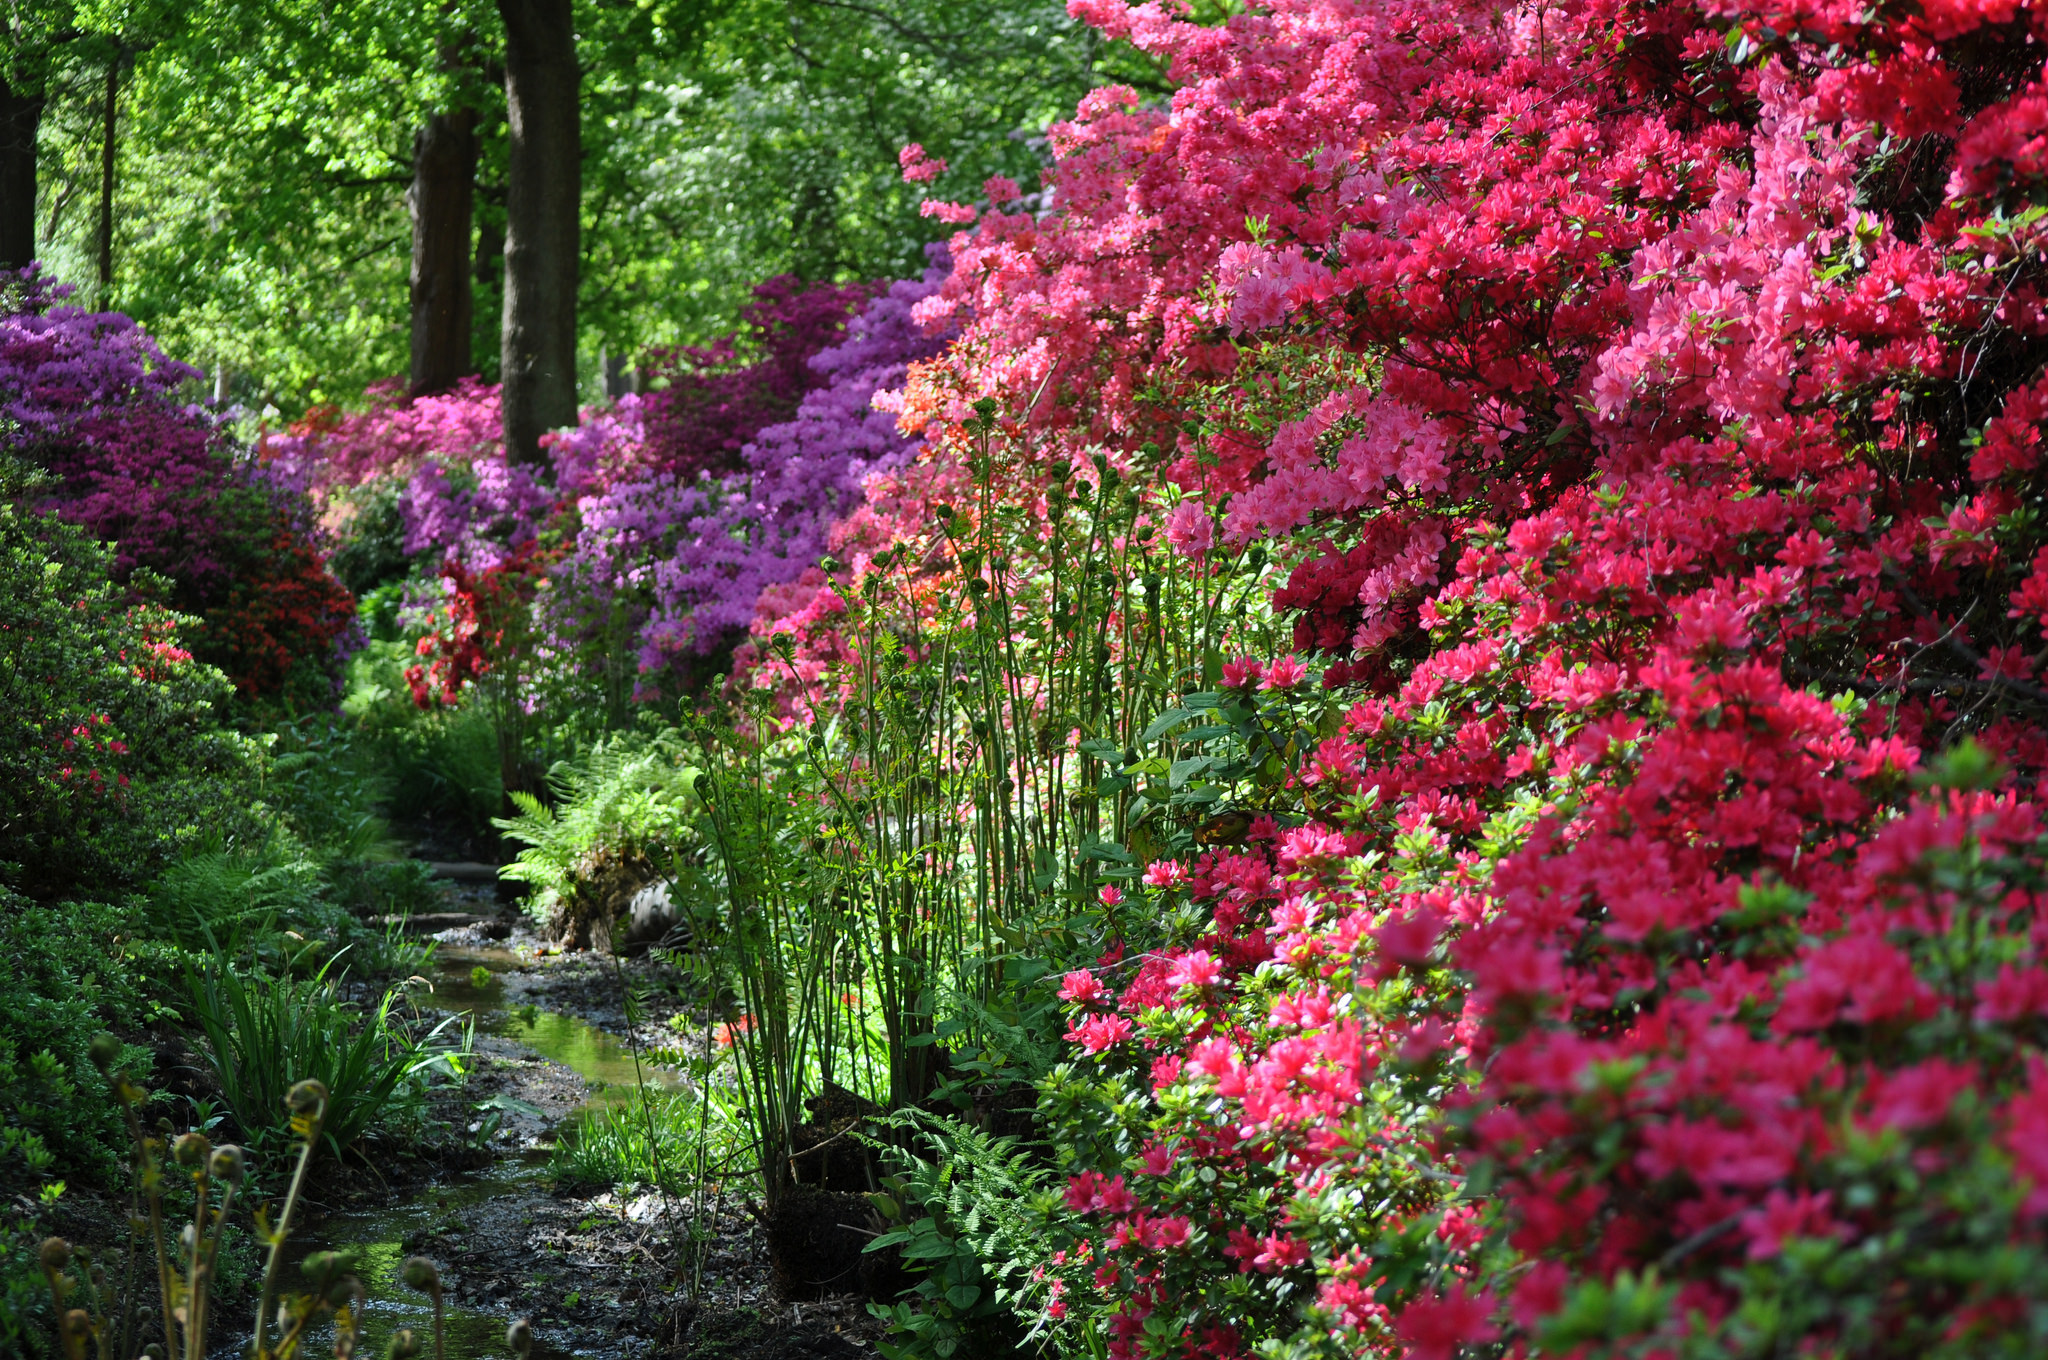 Colourful flowers in Isabella Plantation, Richmond Park, south-west London.